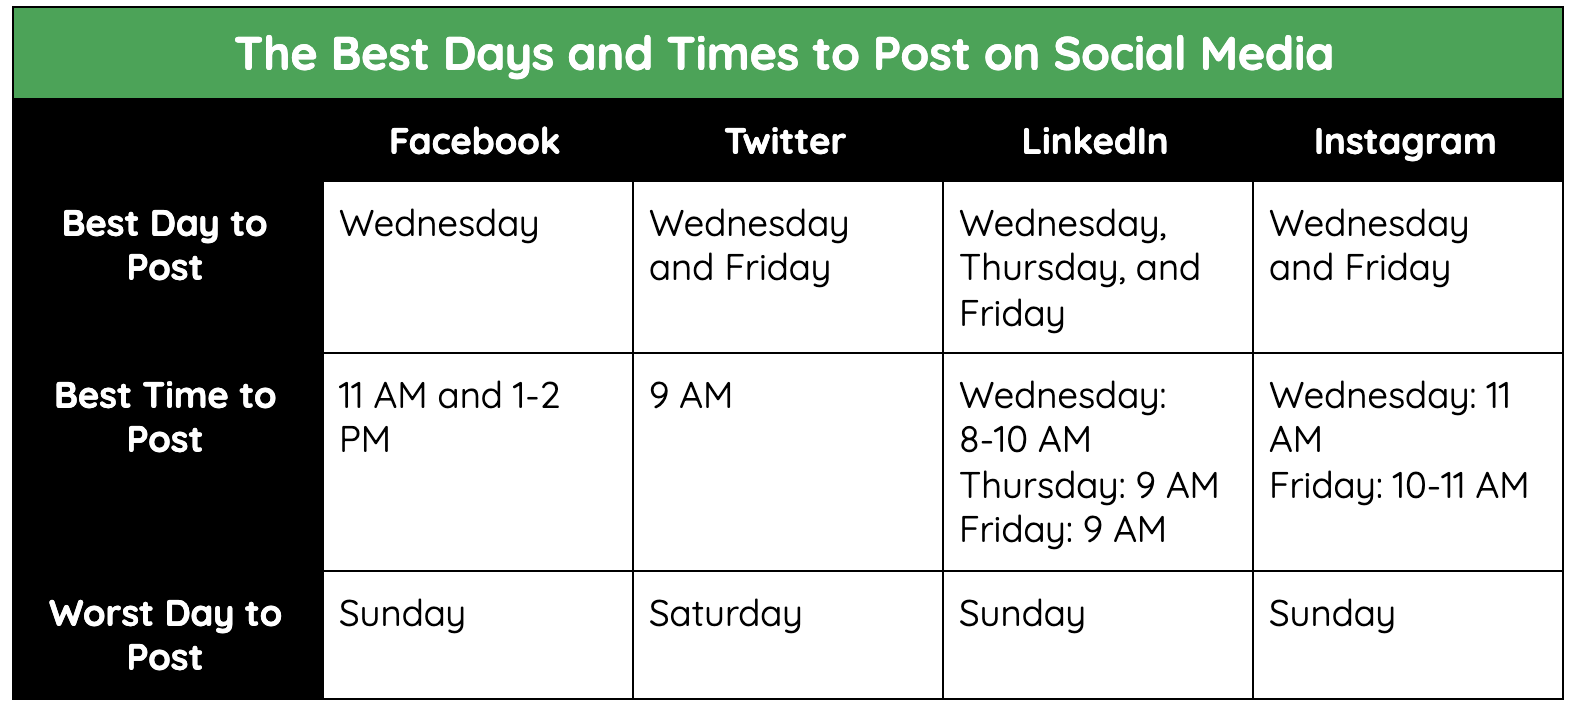 The best days & times to post on social media